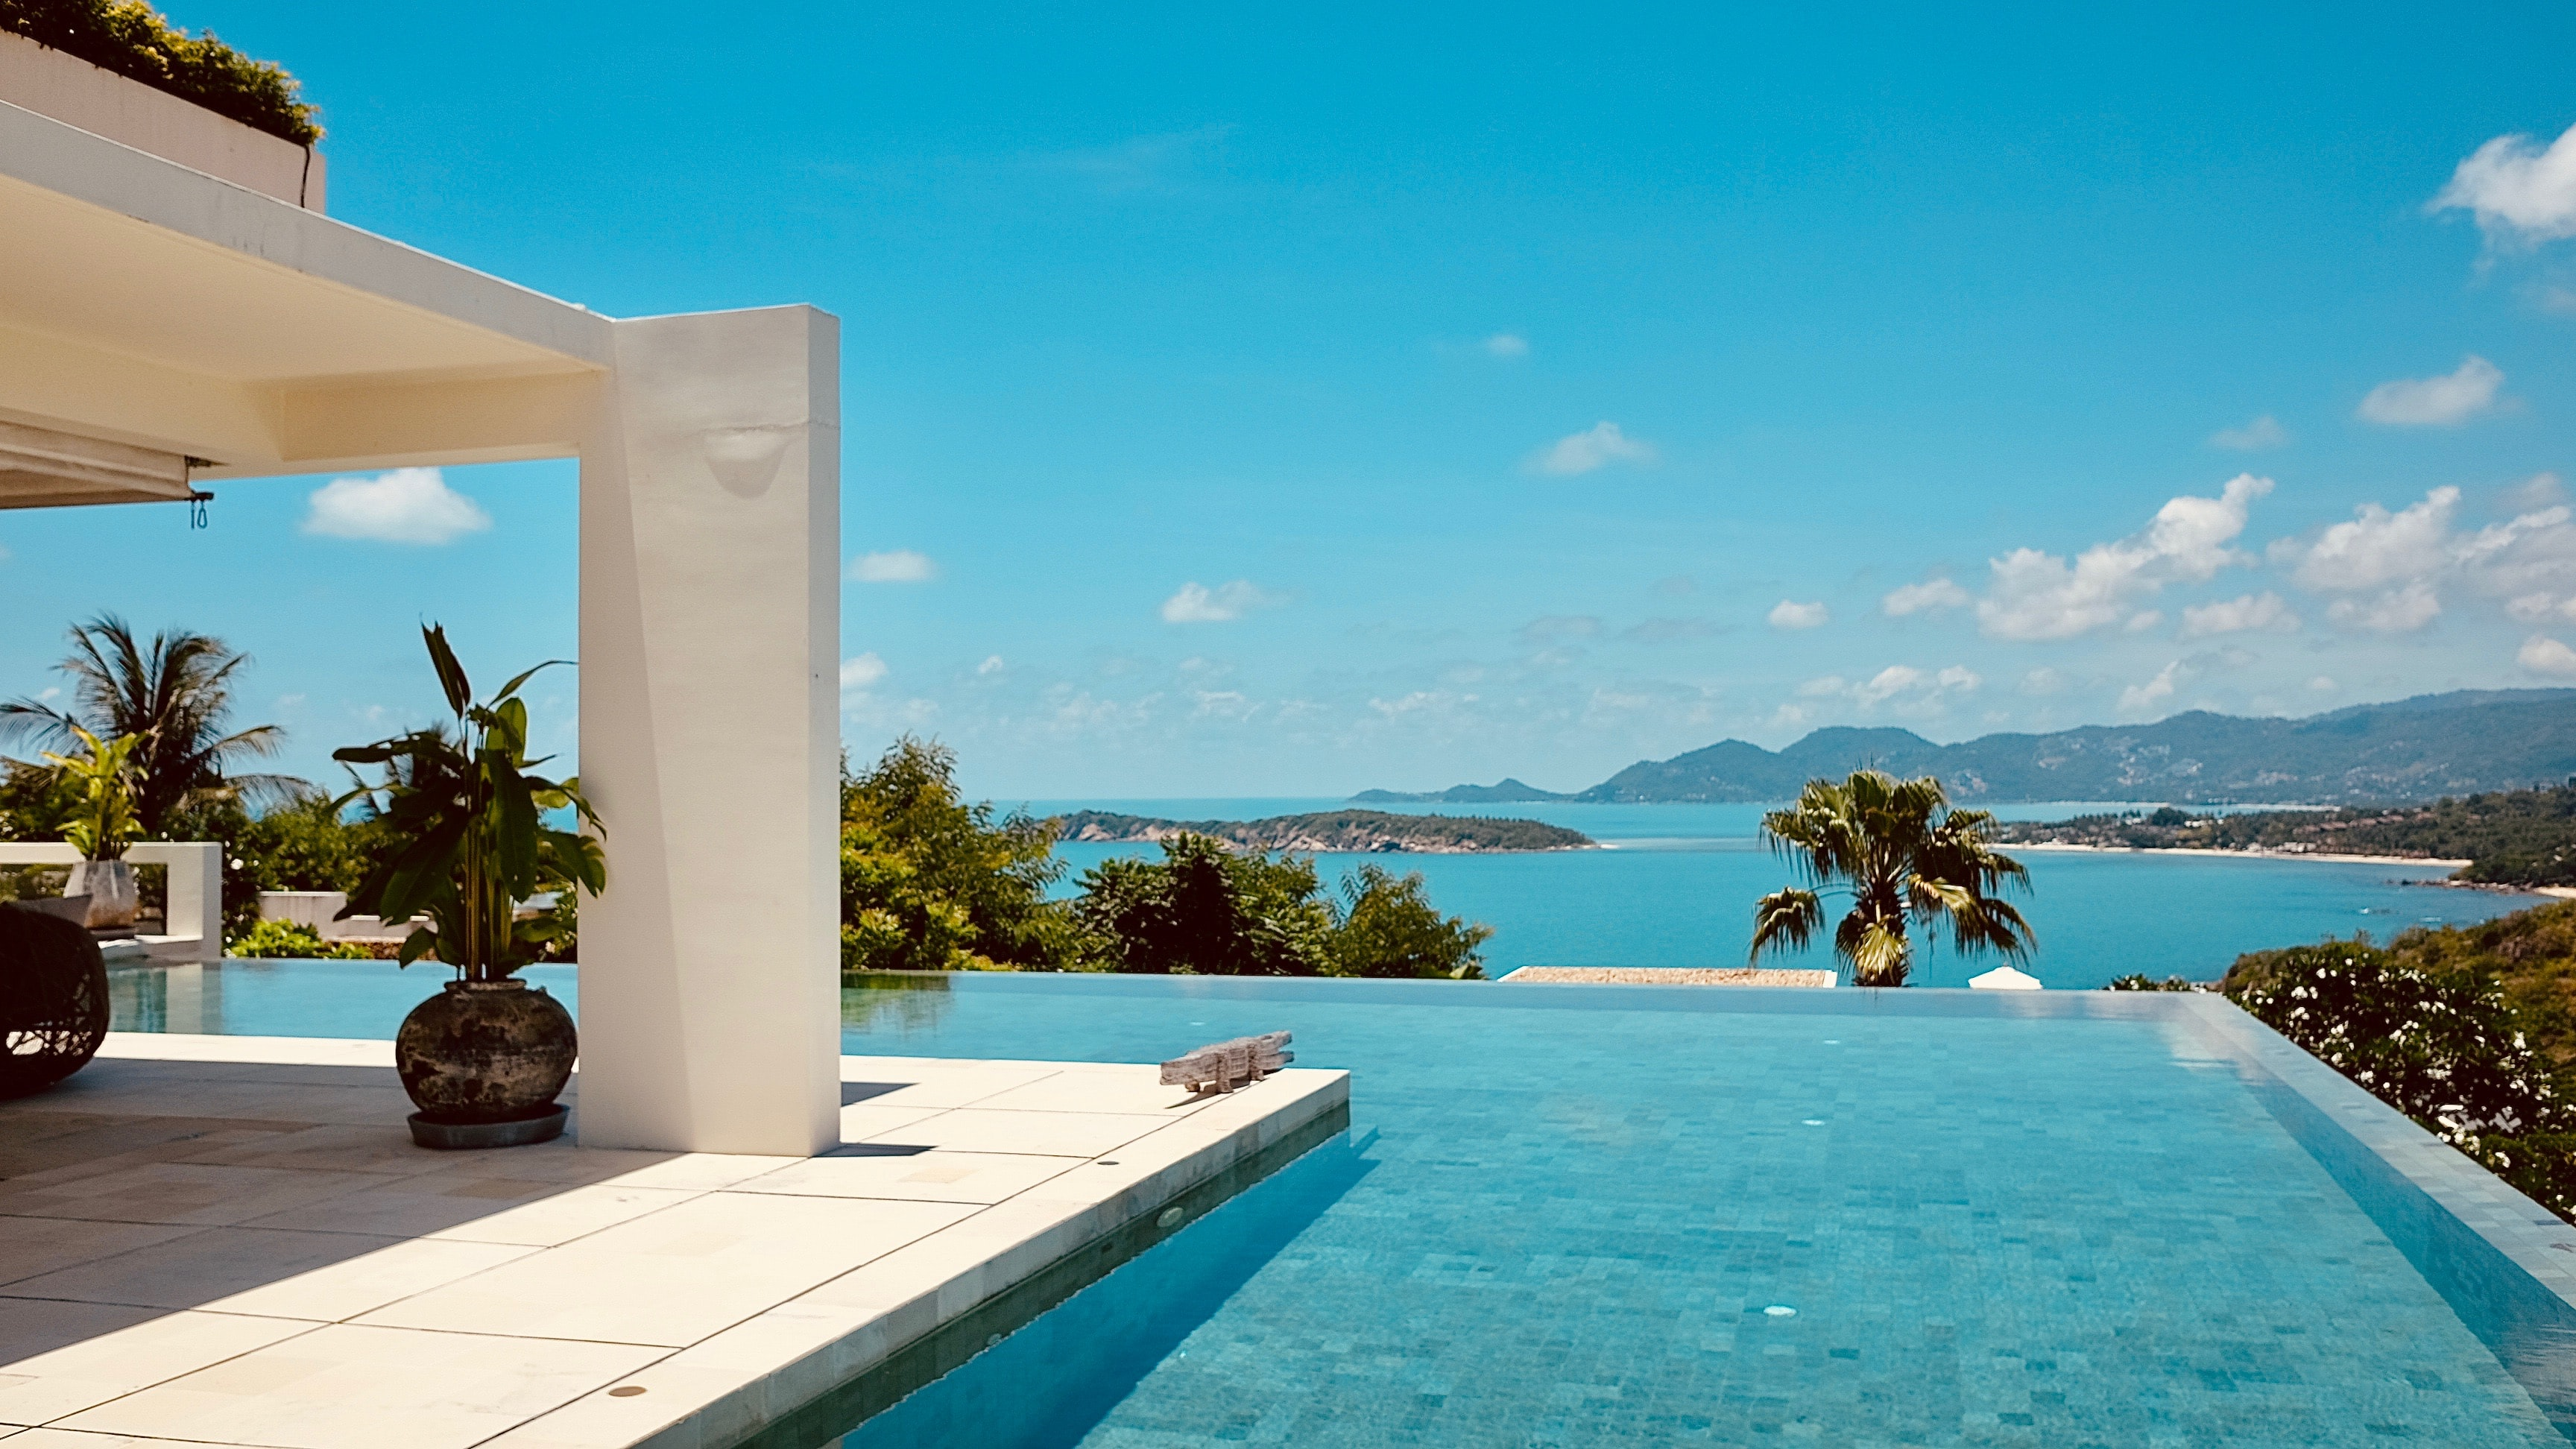 Villa pool, things to do for couple in Thailand